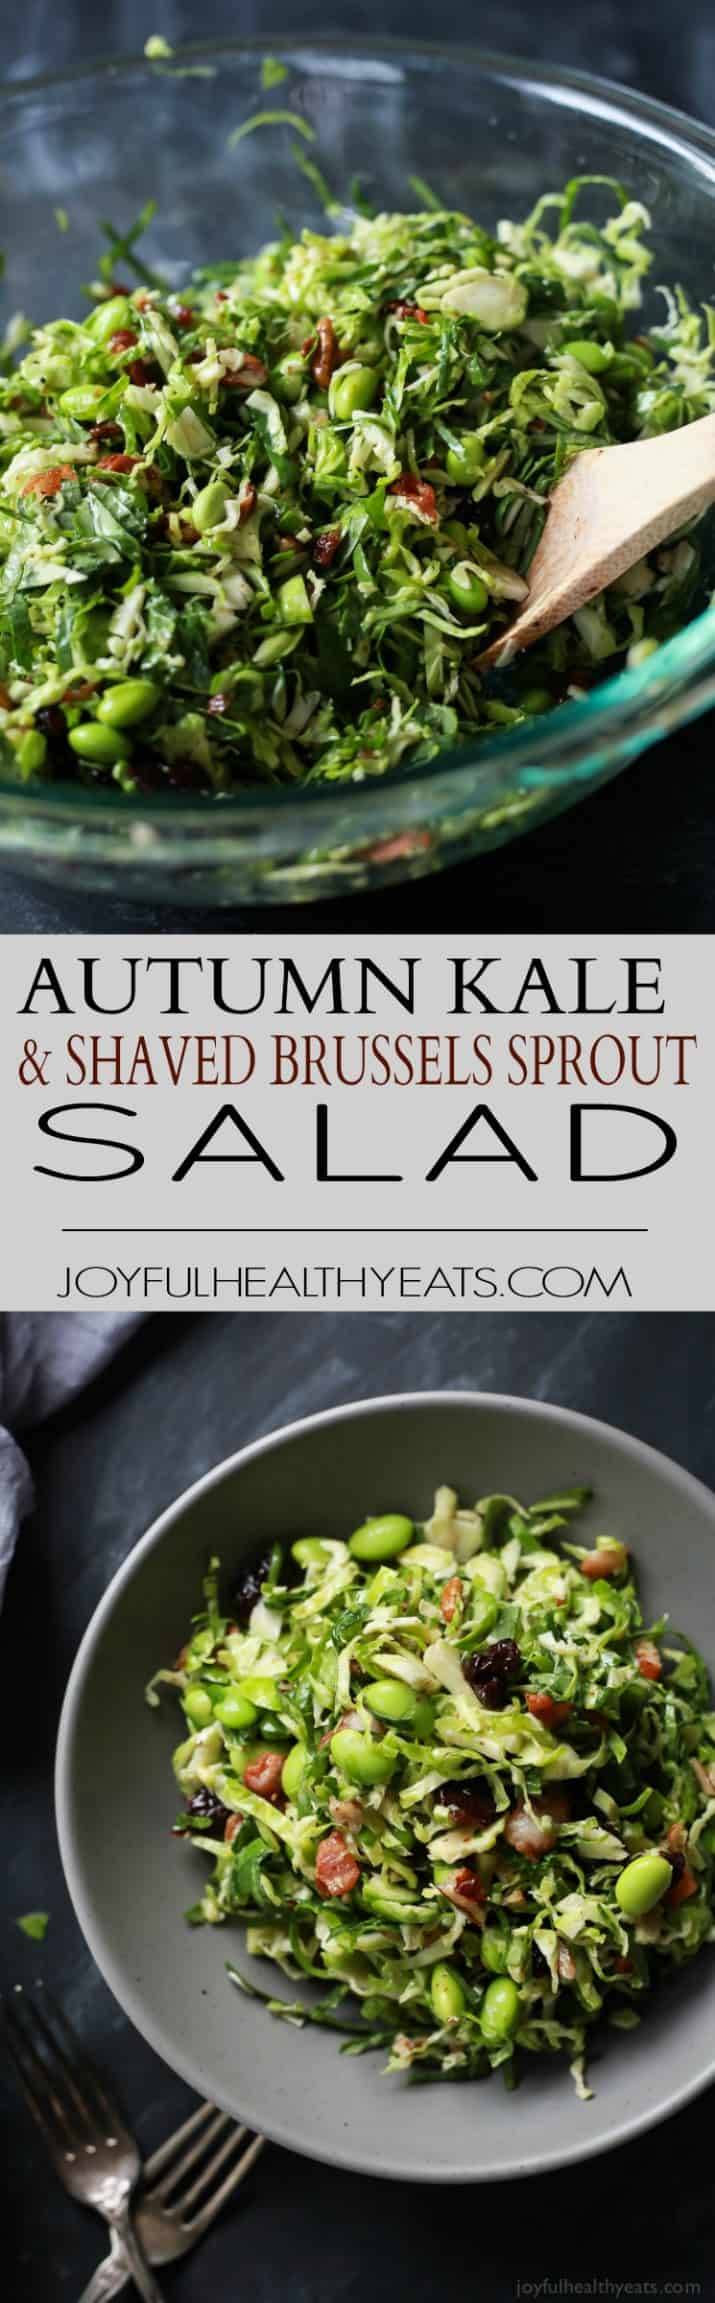 Pinterest image for Autumn Kale & Shaved Brussel Sprout Salad